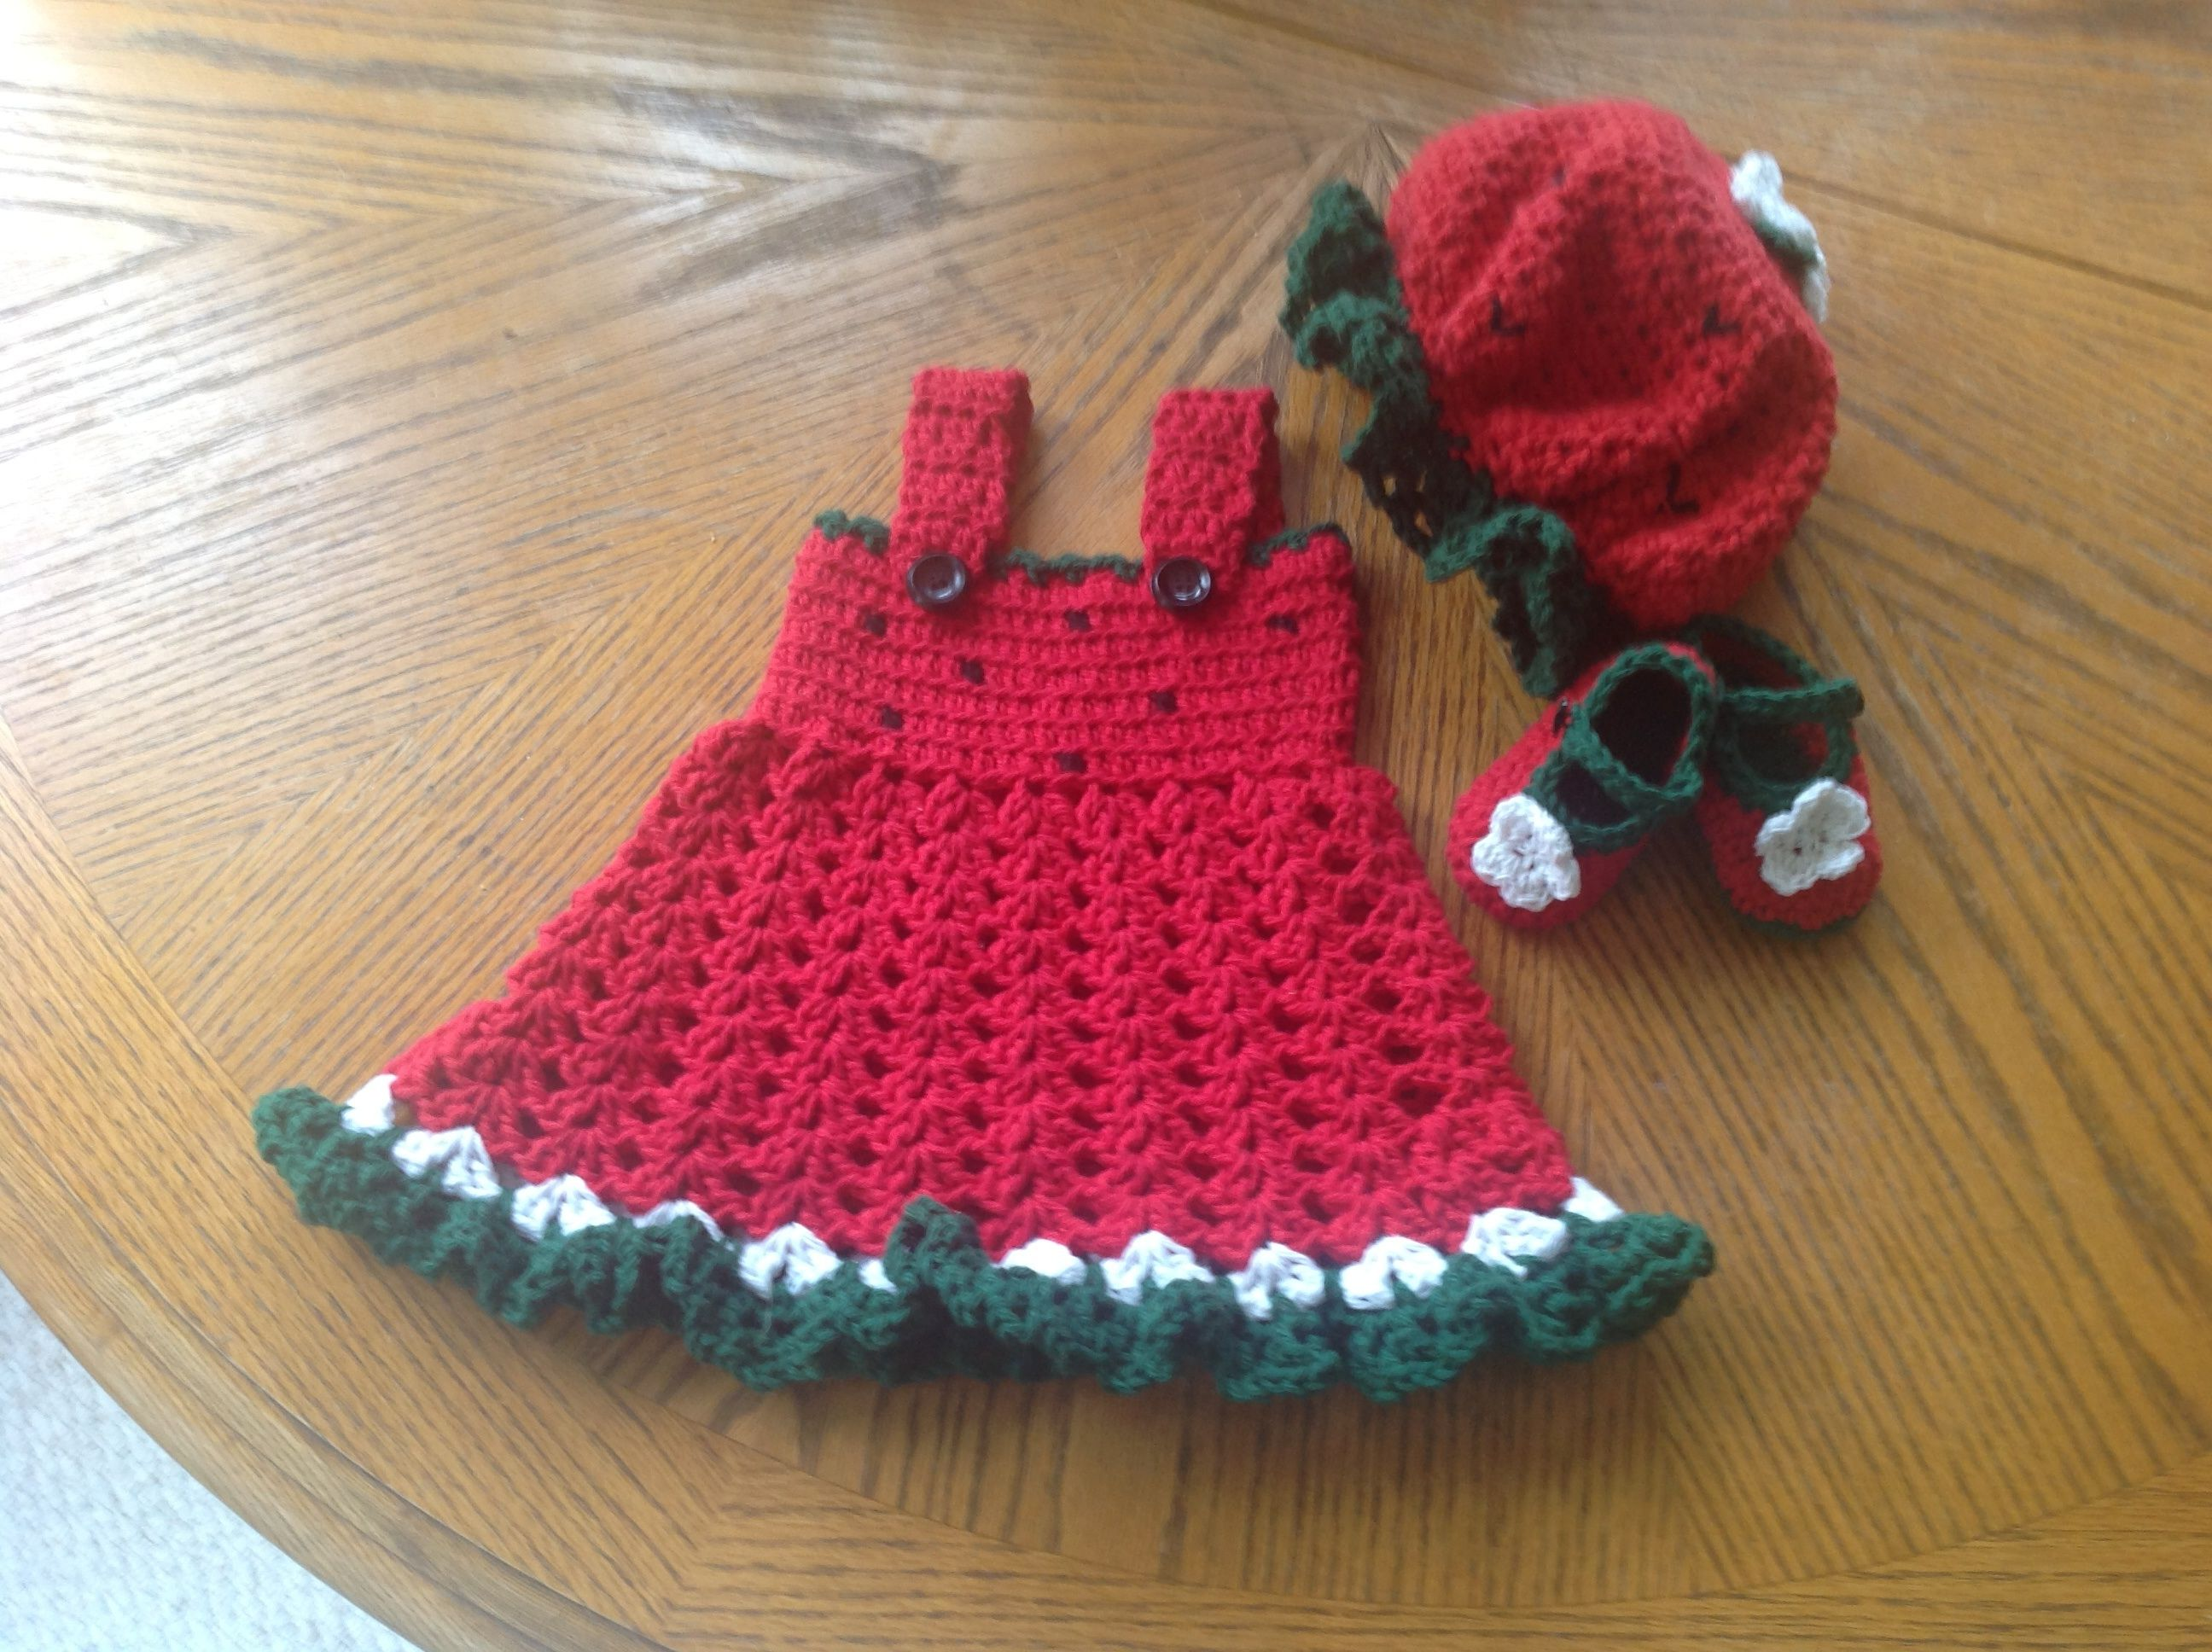 Crocheting Lessons : Sample for crochet classes Crochet Pinterest